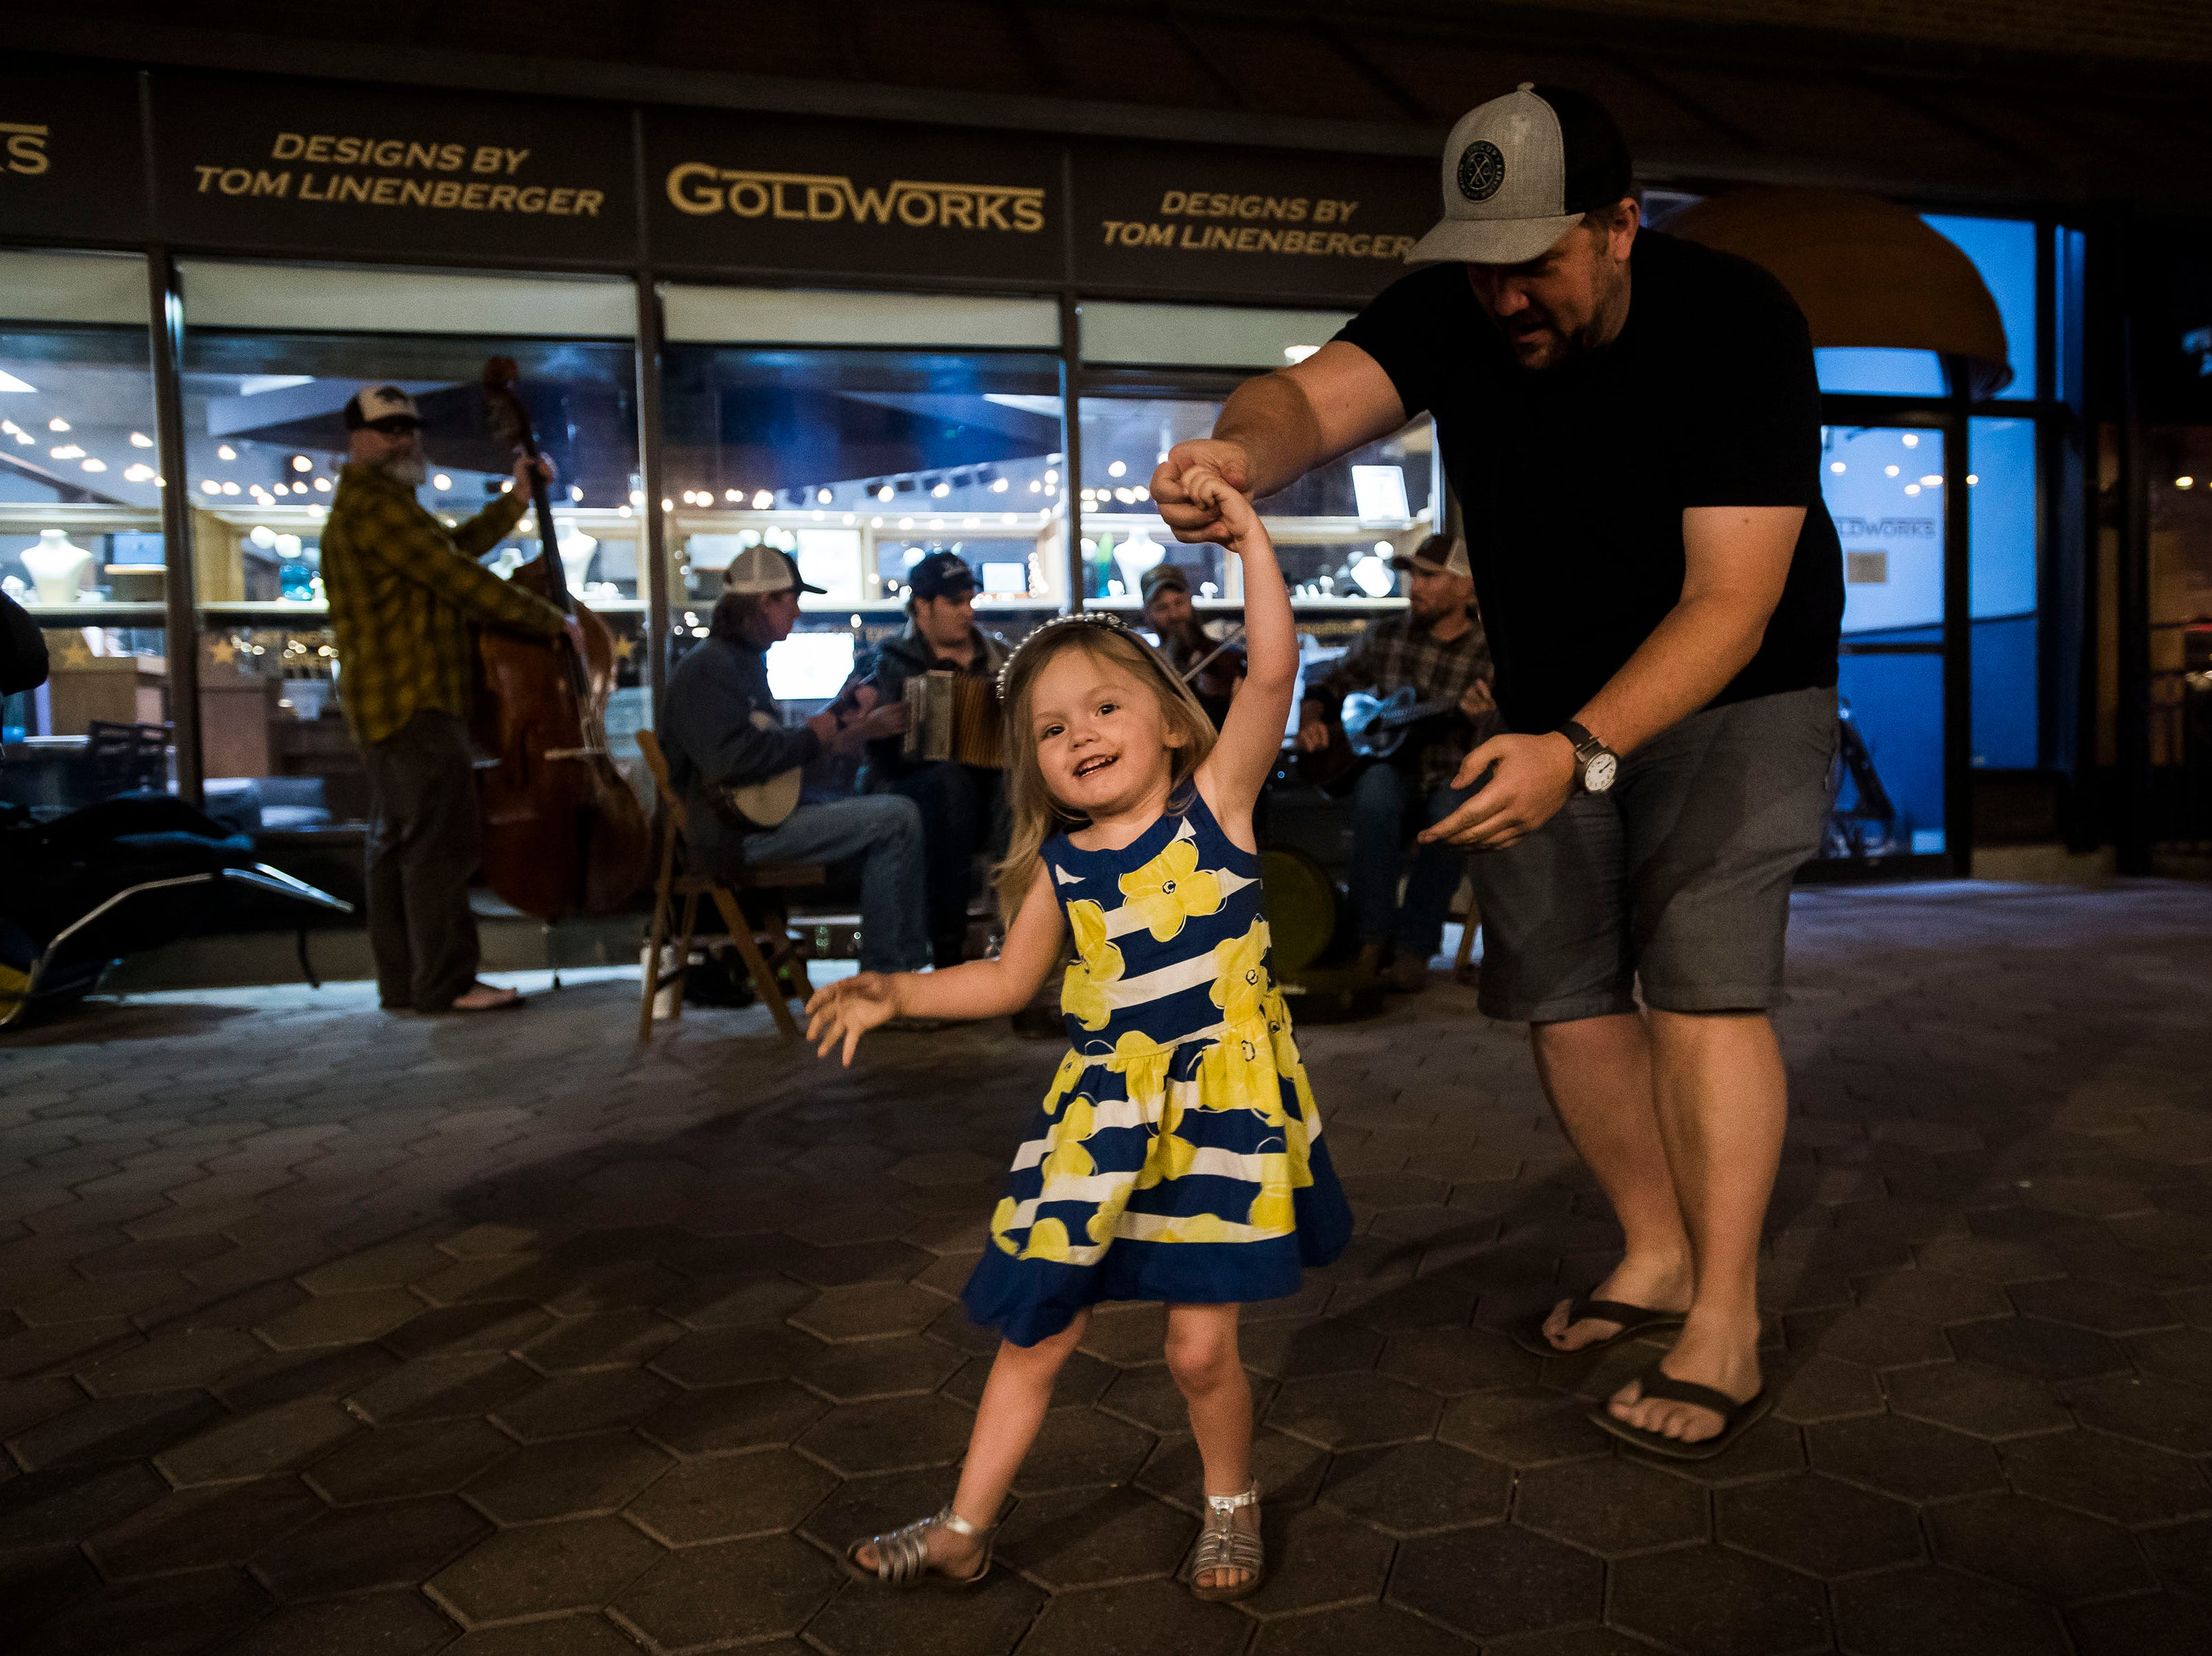 Rylin Sturdevant, 3, spins while dancing with her father Thayne Sturdevant to The New Pleasant Valley String Band during the FoCoMX XI music festival on Friday, April 26, 2019, in Fort Collins, Colo.